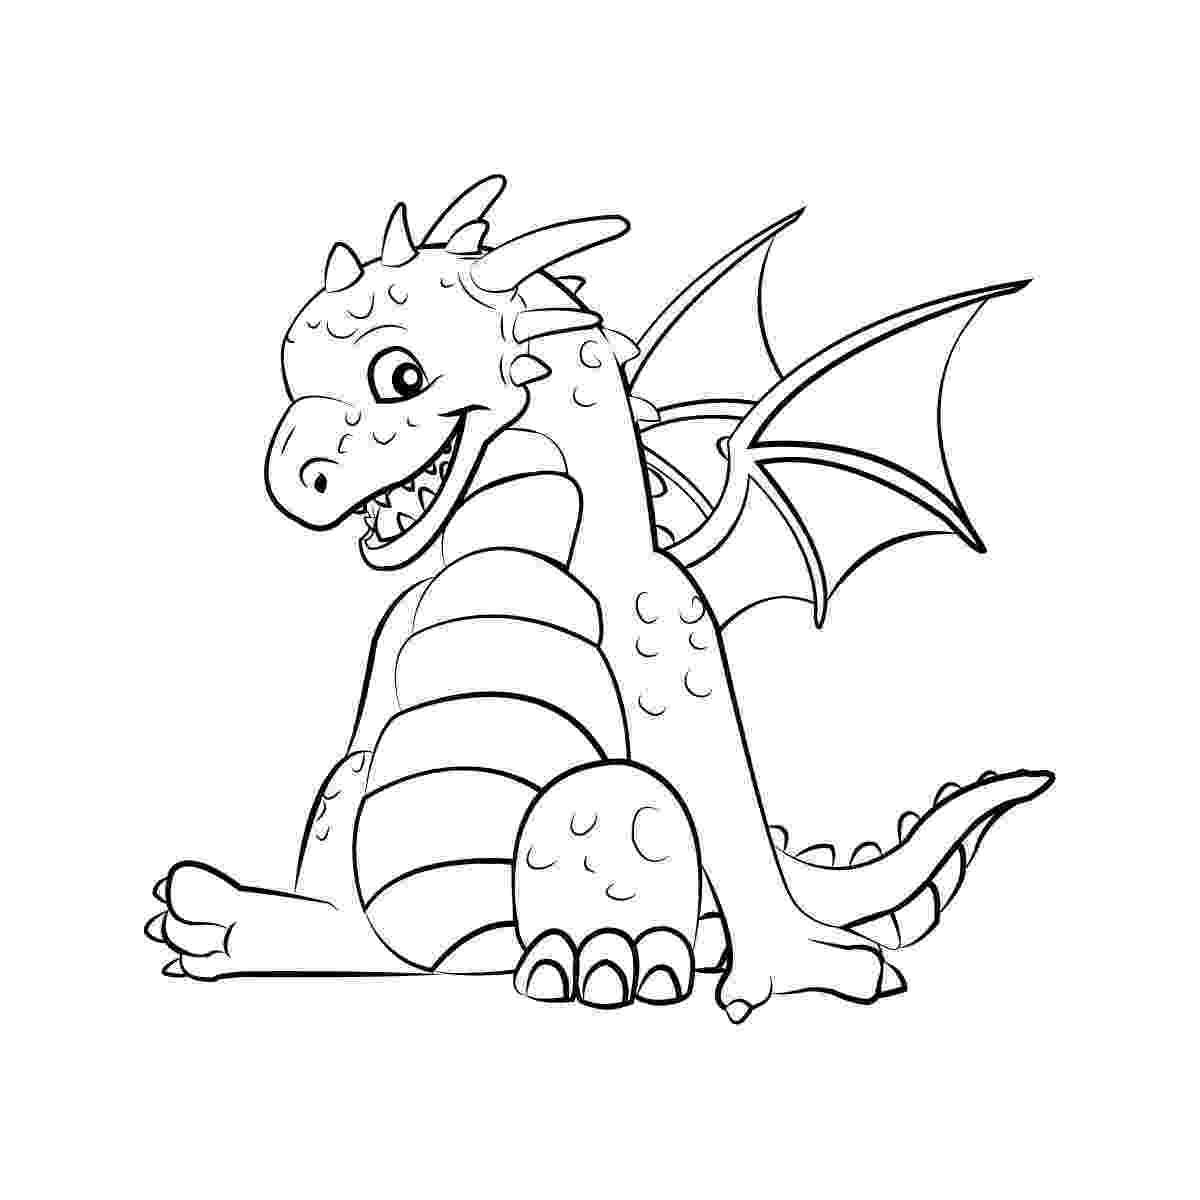 coloring page dragon dragon coloring pages getcoloringpagescom coloring page dragon